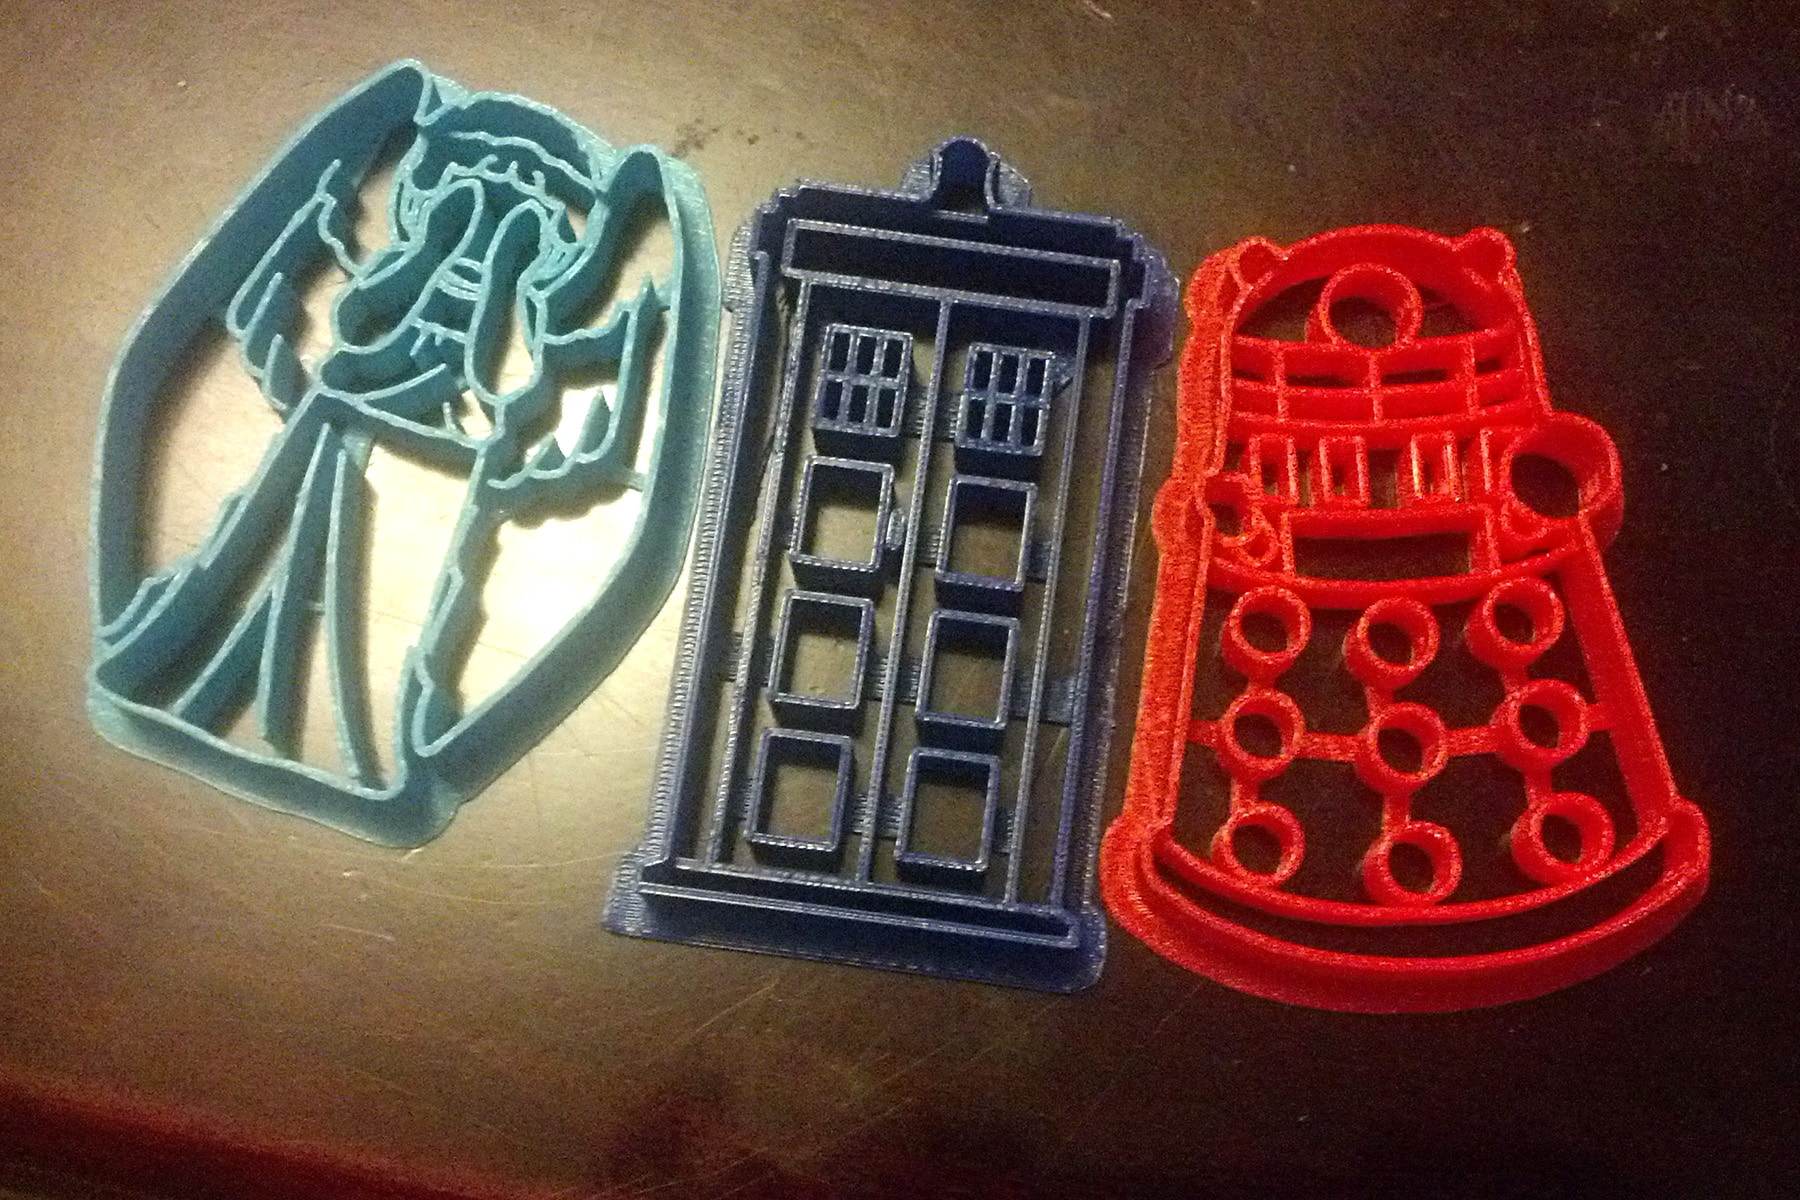 3 Doctor Who themed cookie cutters in a row. A Weeping Angel, a TARDIS, and a Dalek.